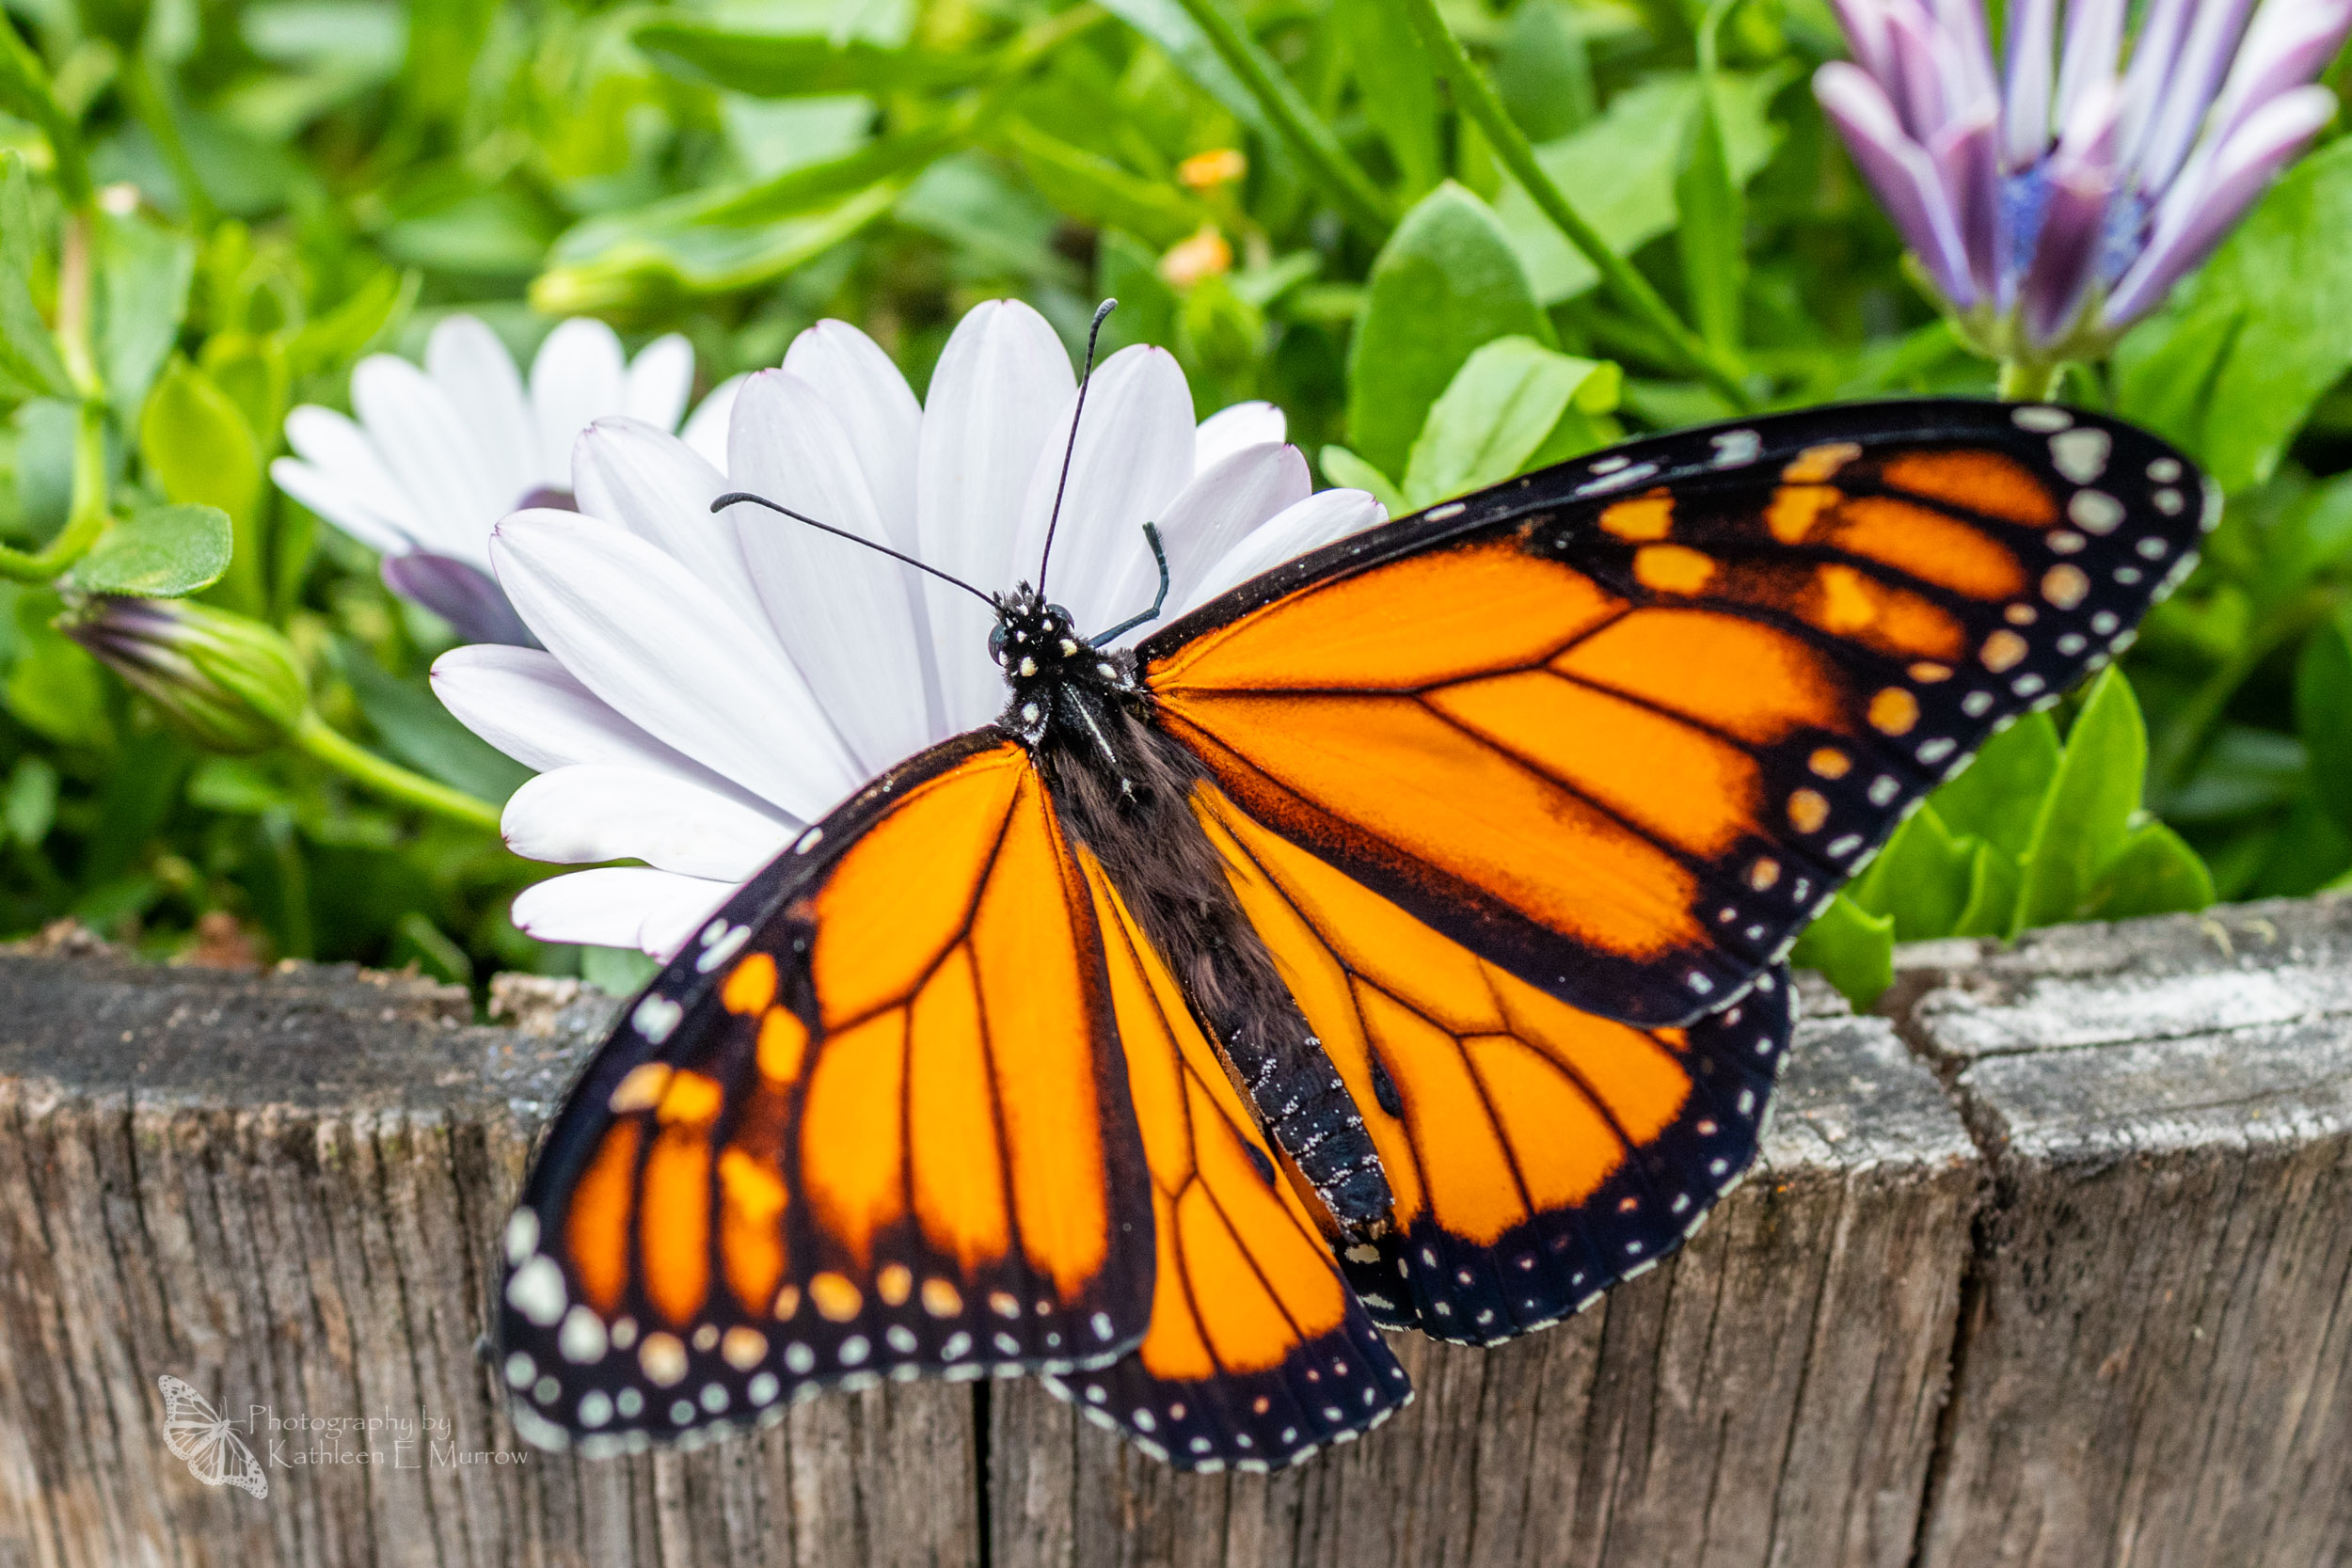 A male monarch butterfly, wings spread, perched on the edge of a wooden planter box, with white and purple daisies